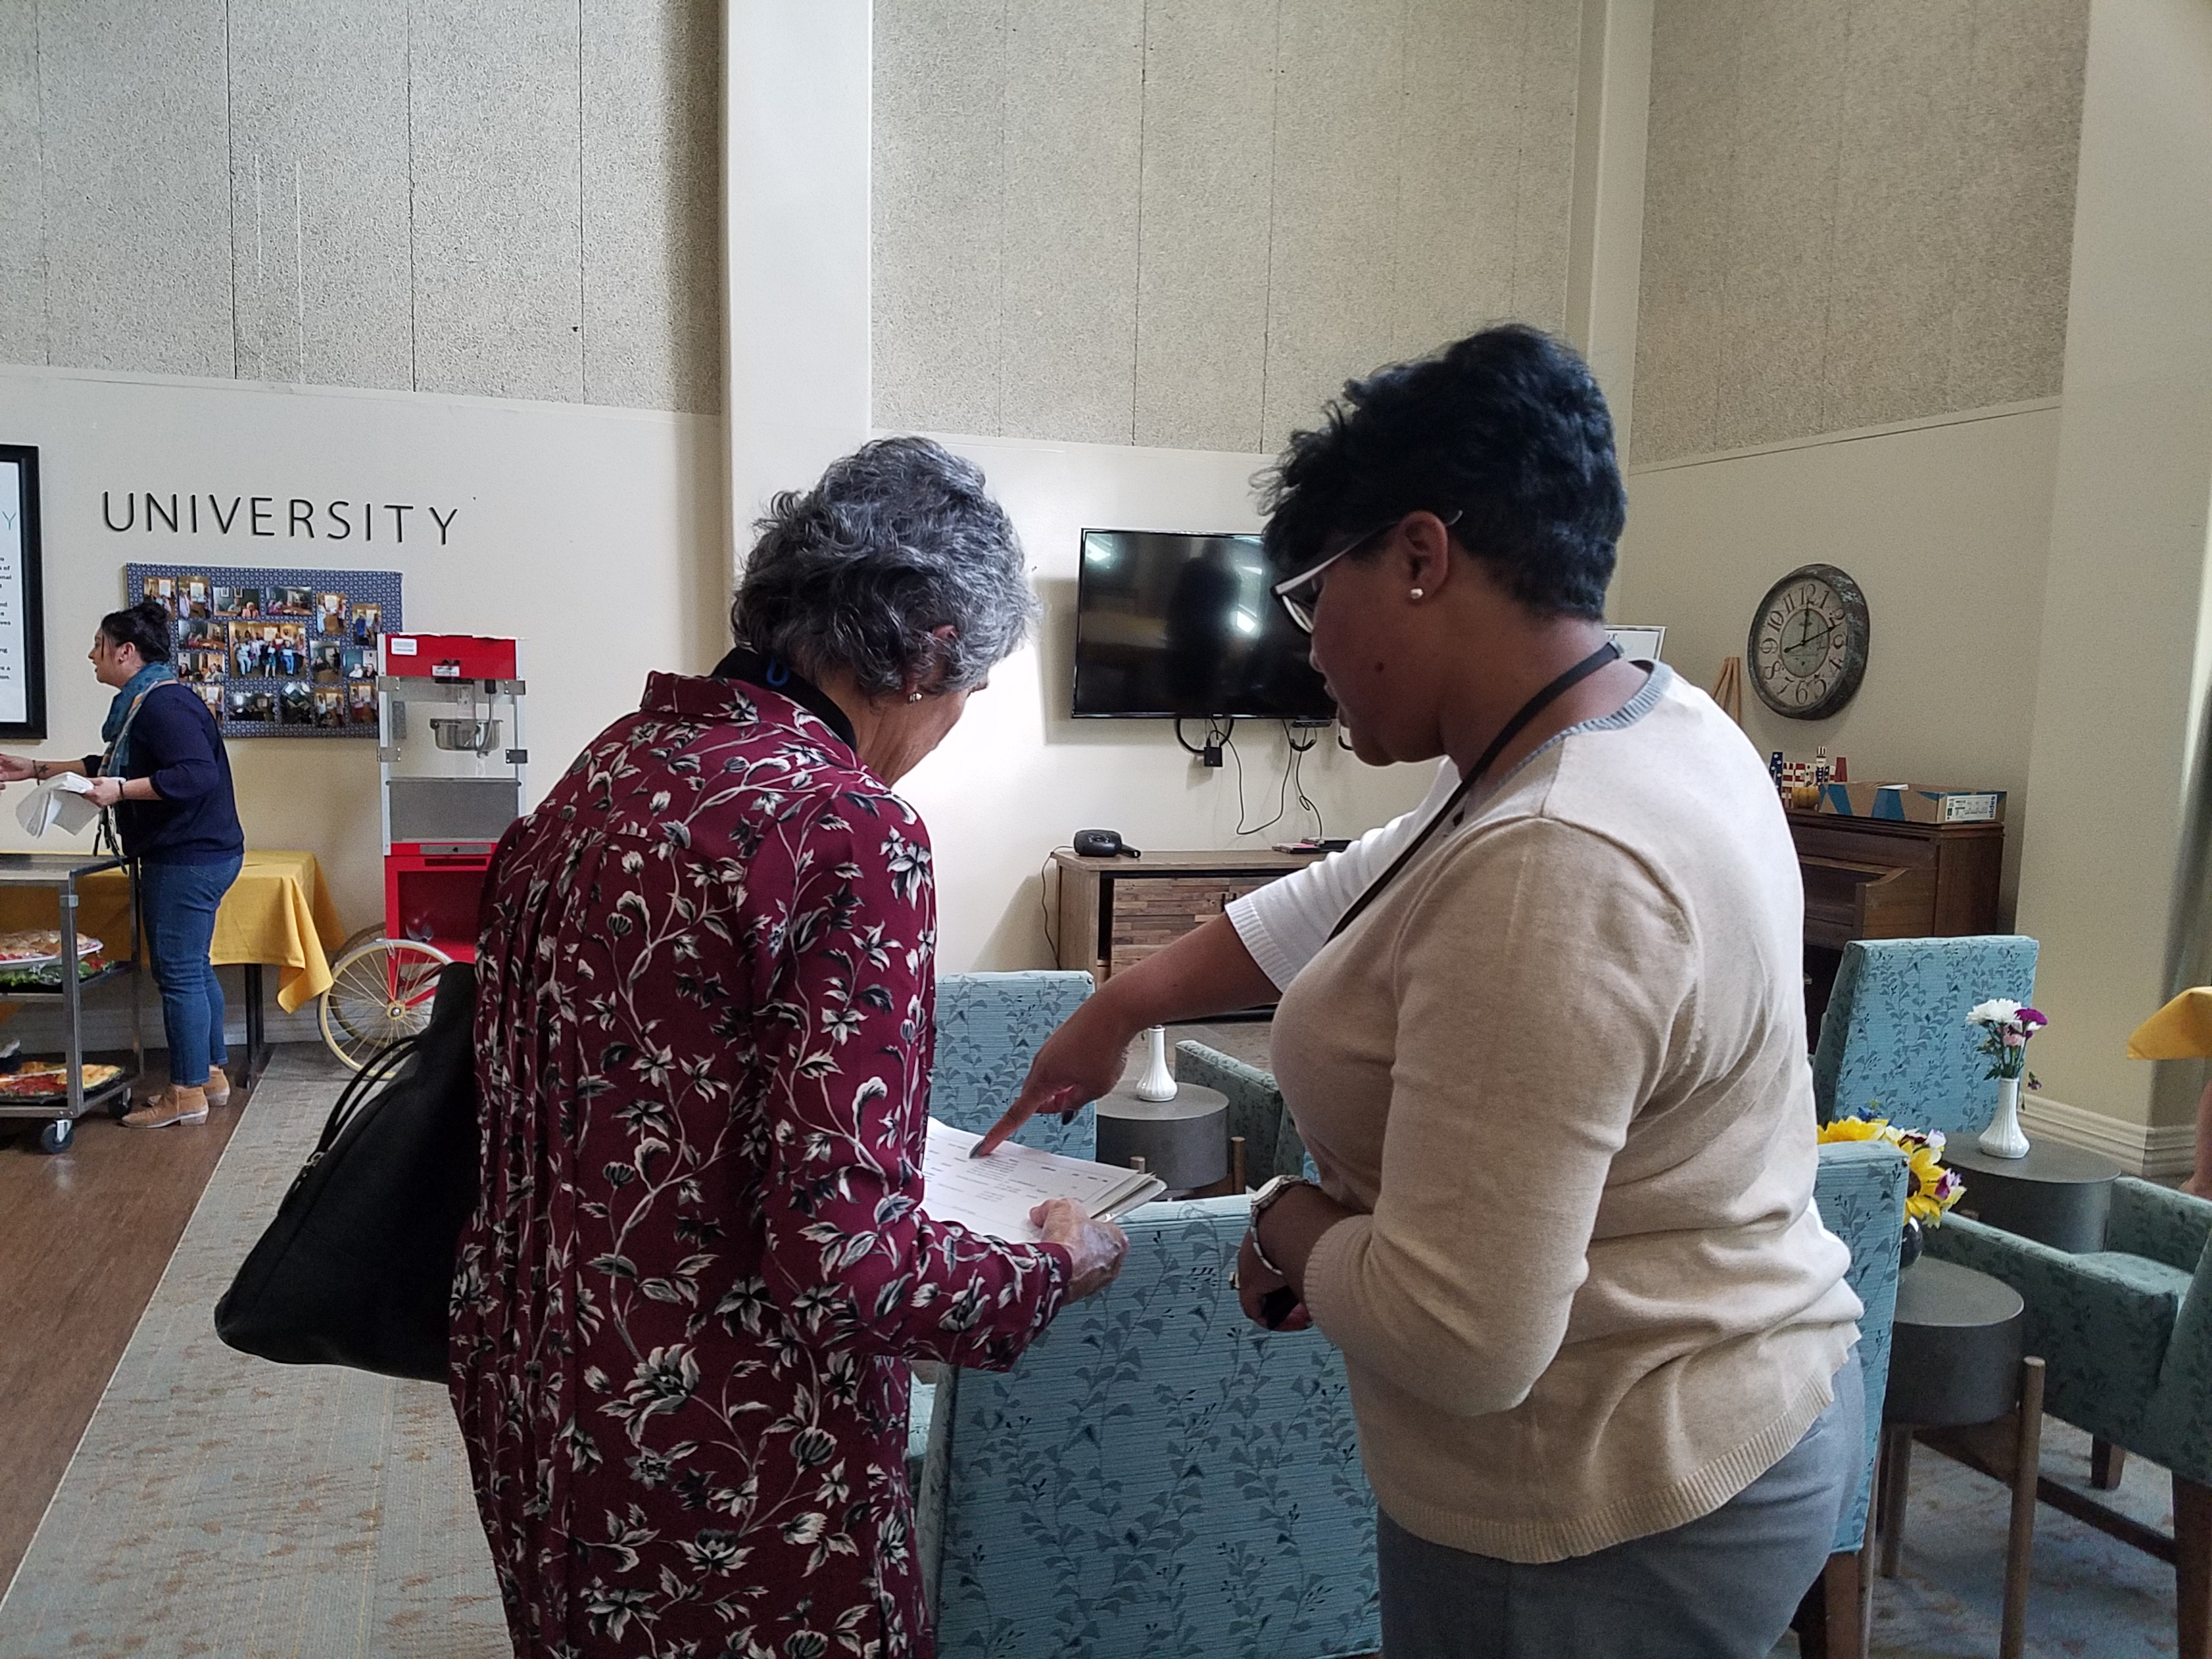 Shantel Mims-Jones from Texas Department of Family and Protective Services shows agency data to Commissioner Cook.